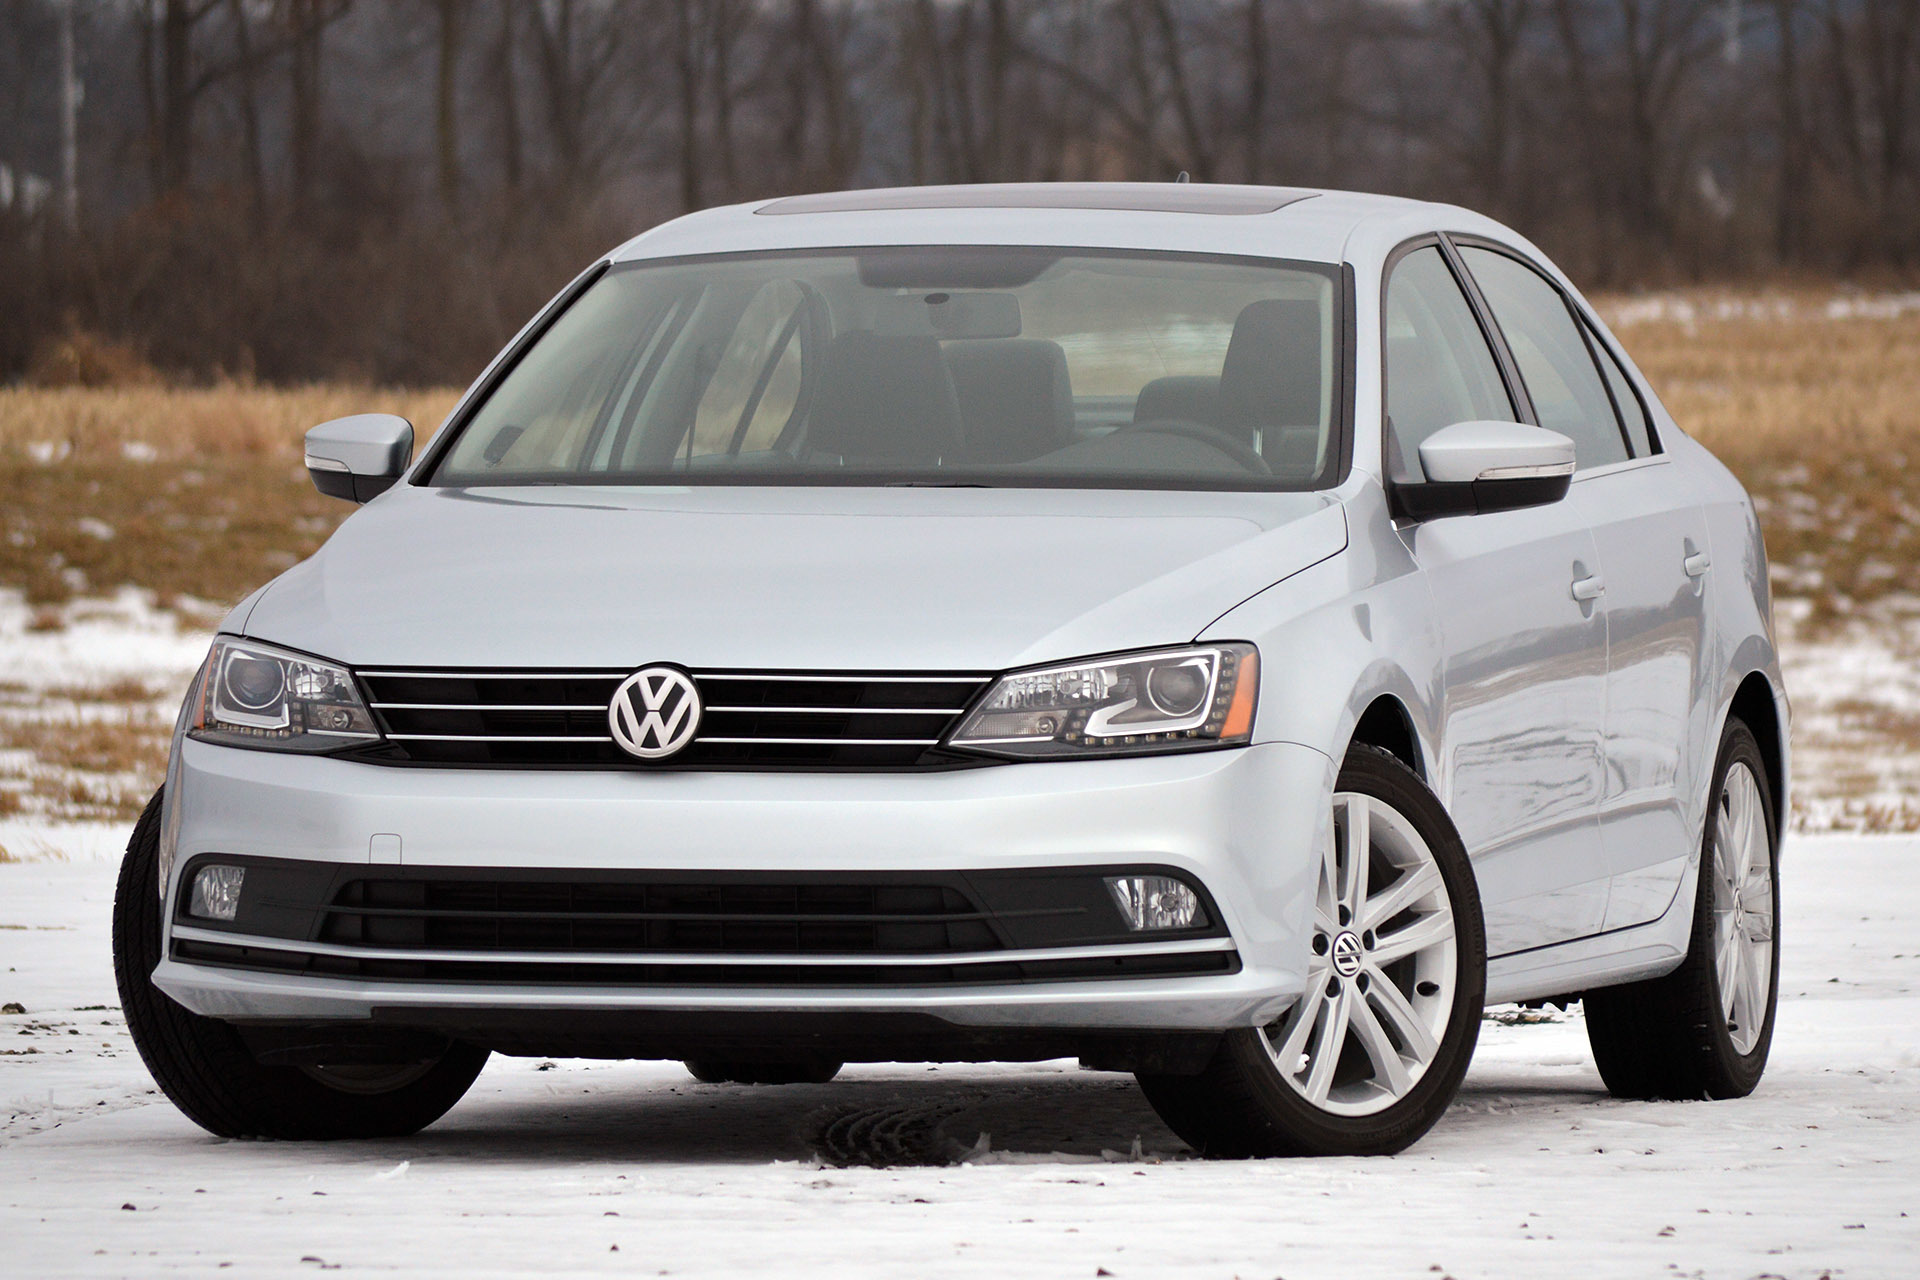 2015 volkswagen jetta tdi review photo gallery autoblog. Black Bedroom Furniture Sets. Home Design Ideas